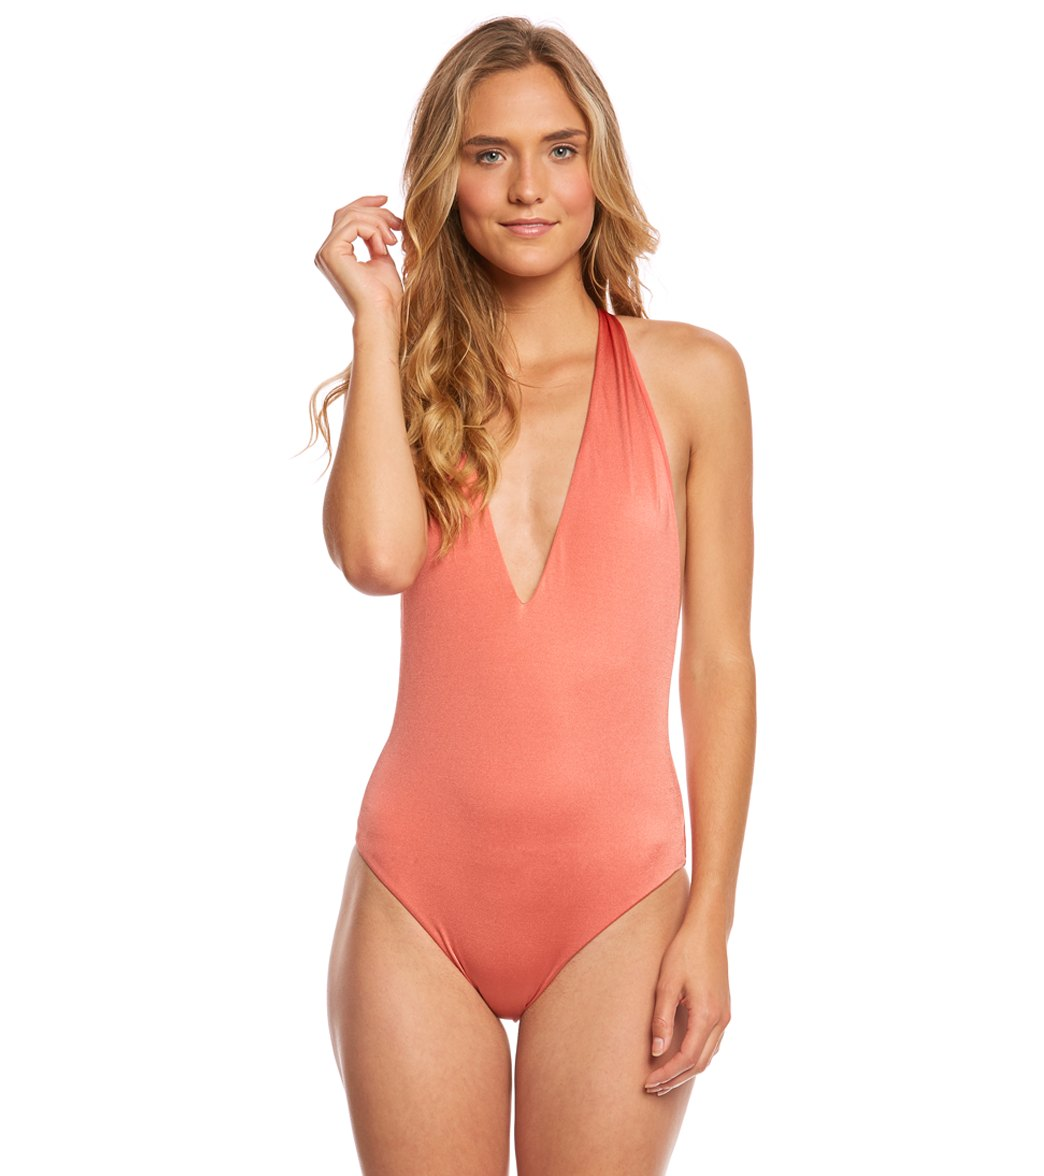 498ba92b2188c Billabong Sol Searcher Deep V One Piece Swimsuit at SwimOutlet.com - Free  Shipping